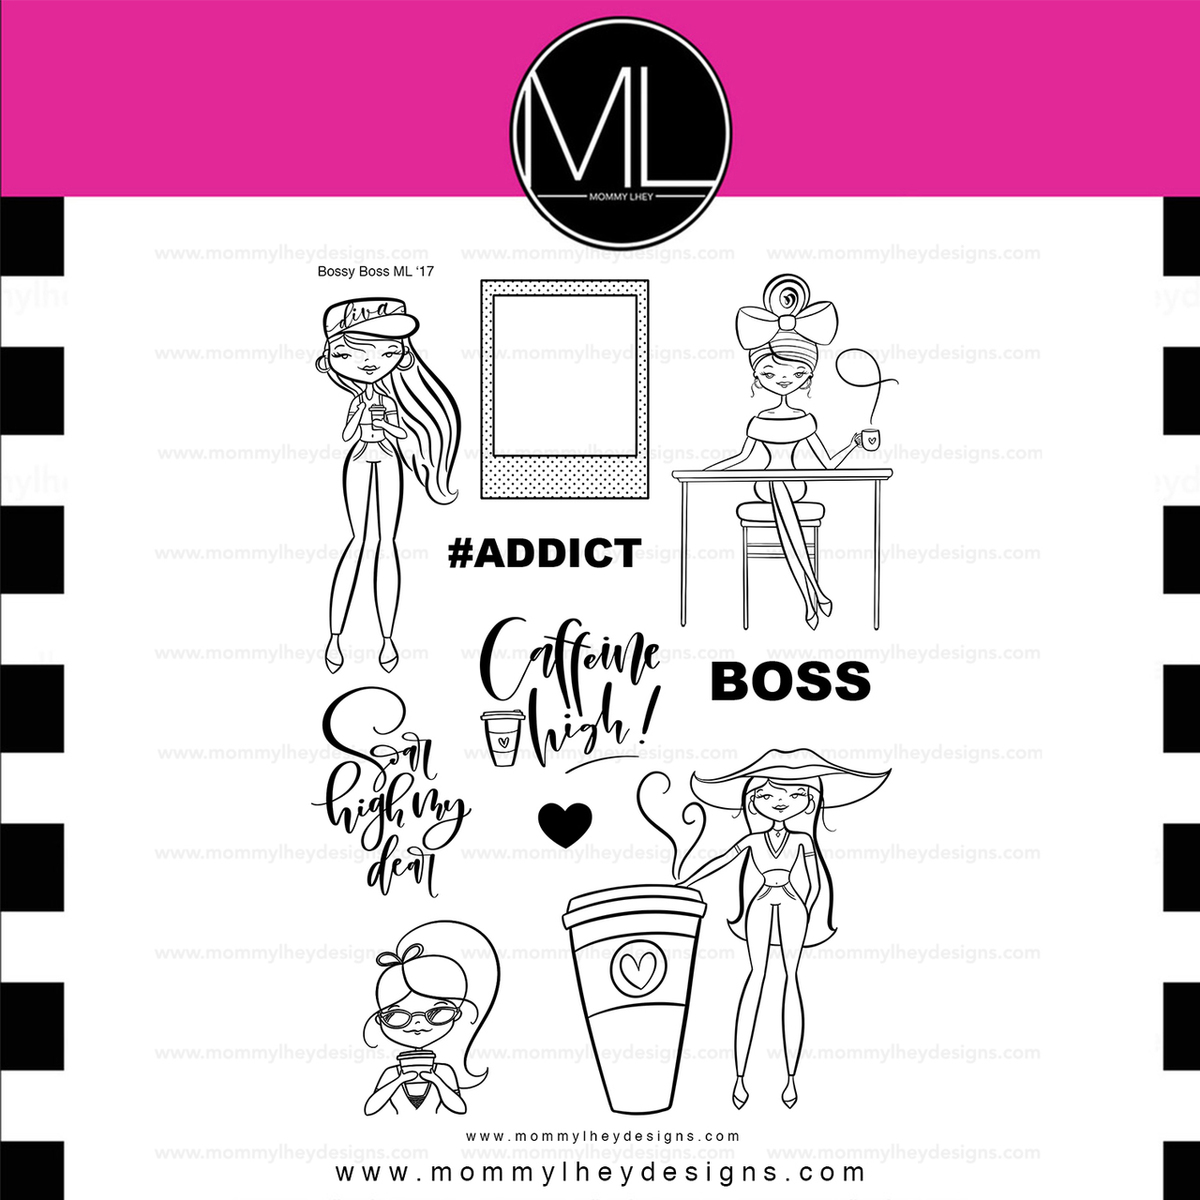 Diva boss clipart black and white png freeuse download Bossy Boss png freeuse download